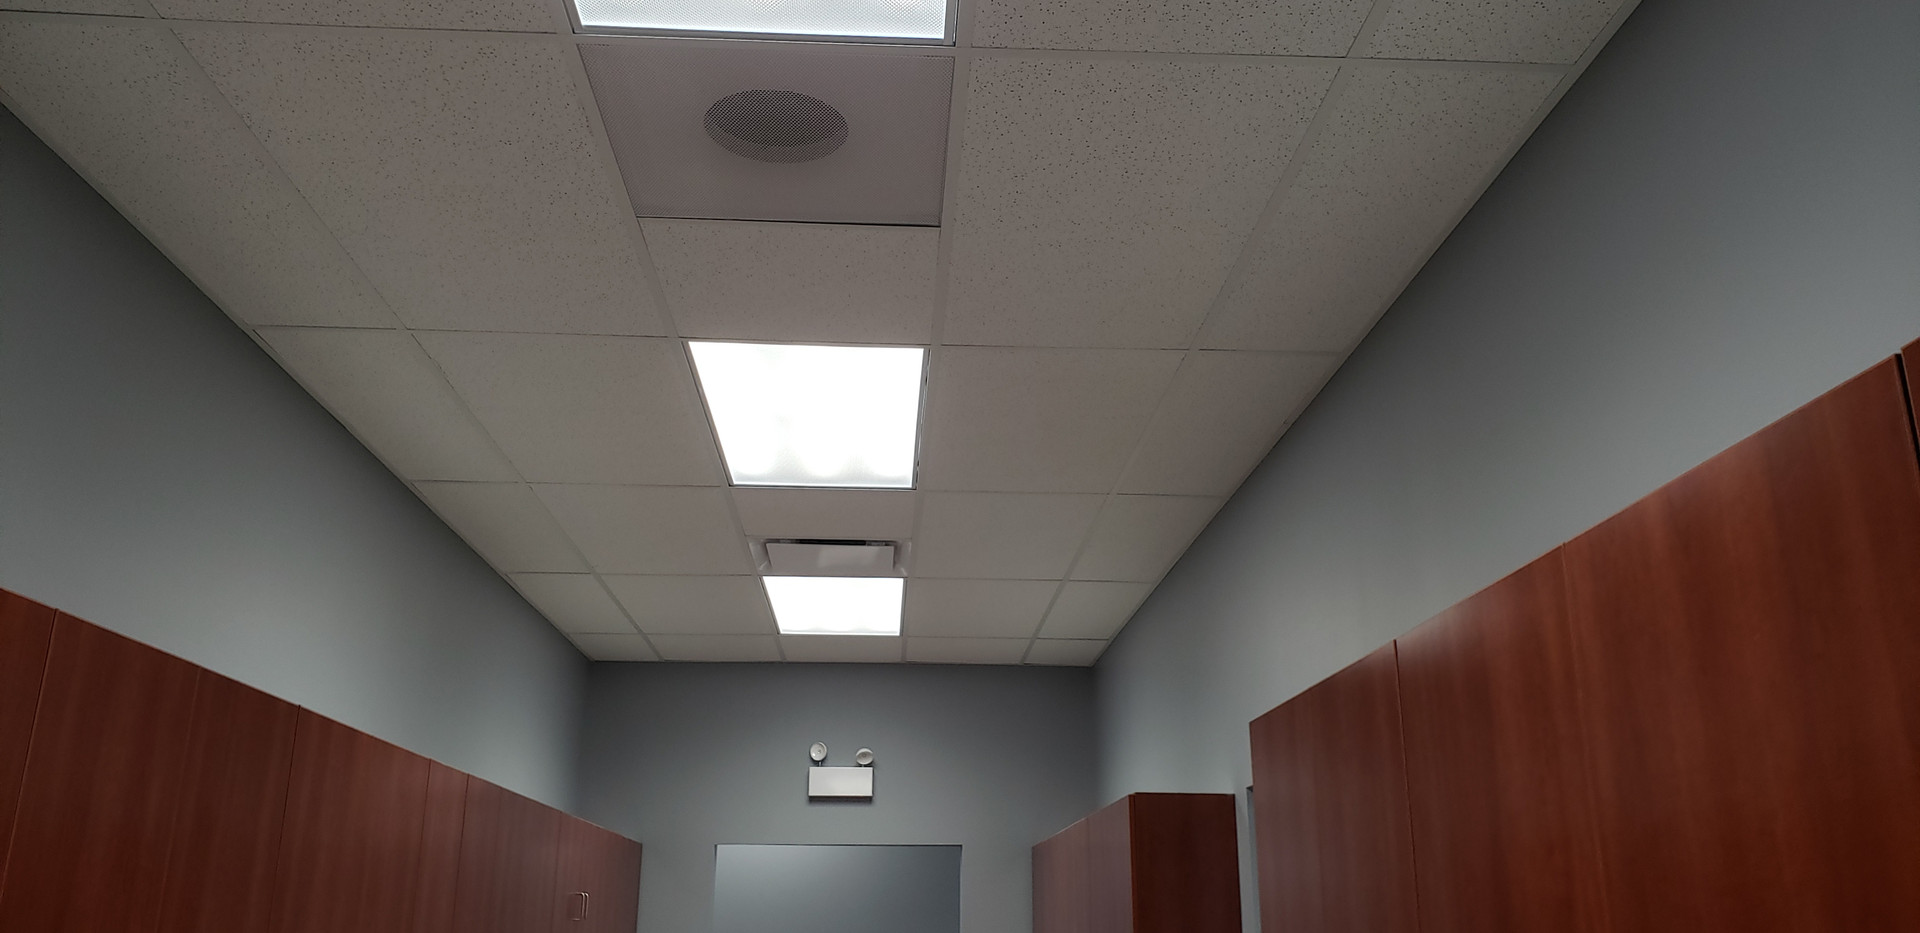 Ceiling & Lighting View - Buildout Pros